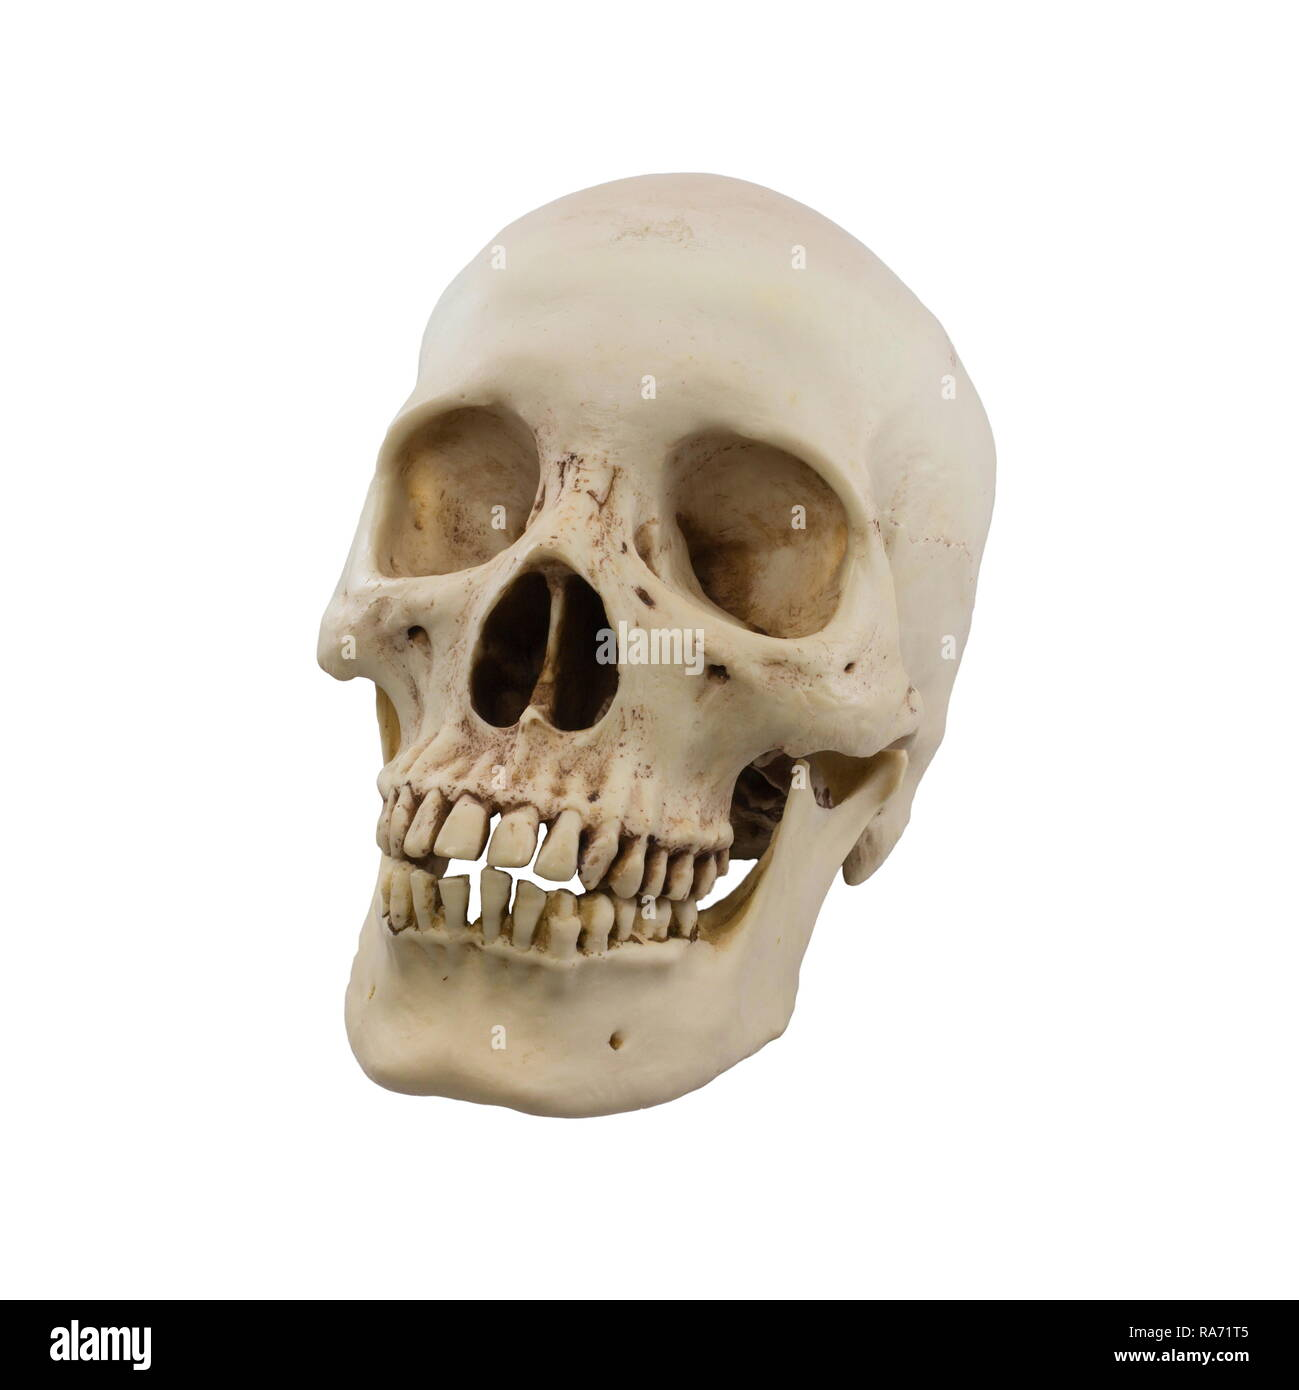 Human skull isolated on a white background. - Stock Image